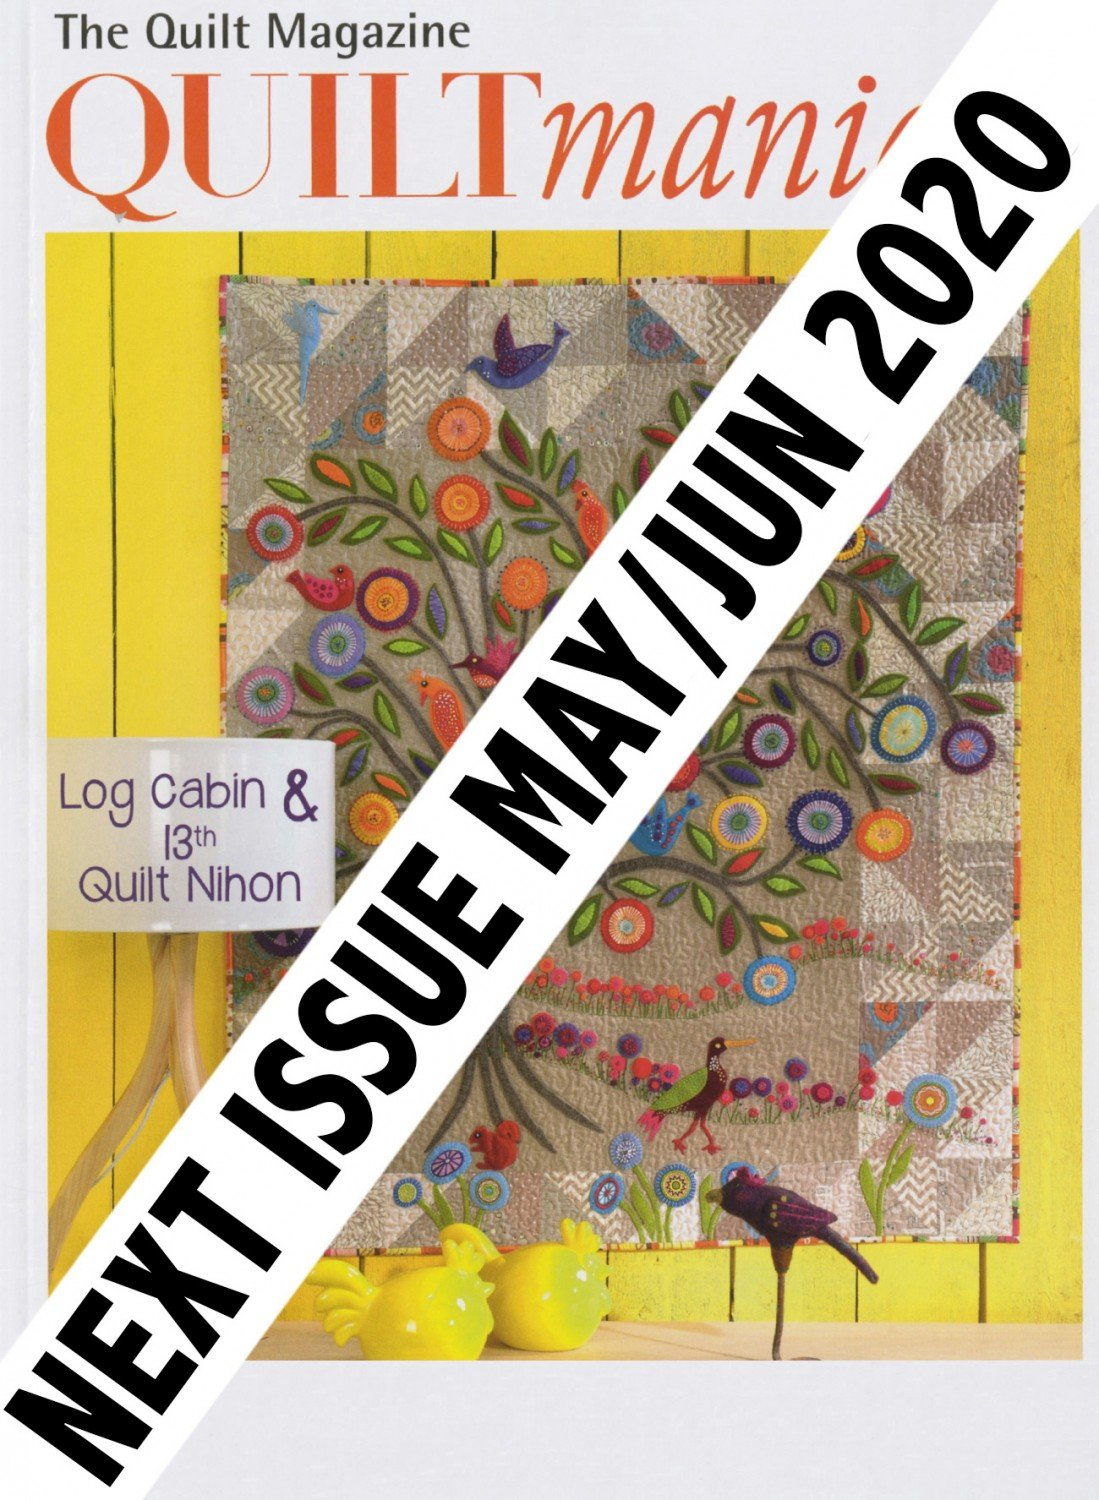 Quiltmania Magazine 137 May/Jun 2020 ~RELEASE DATE May 5/2020~